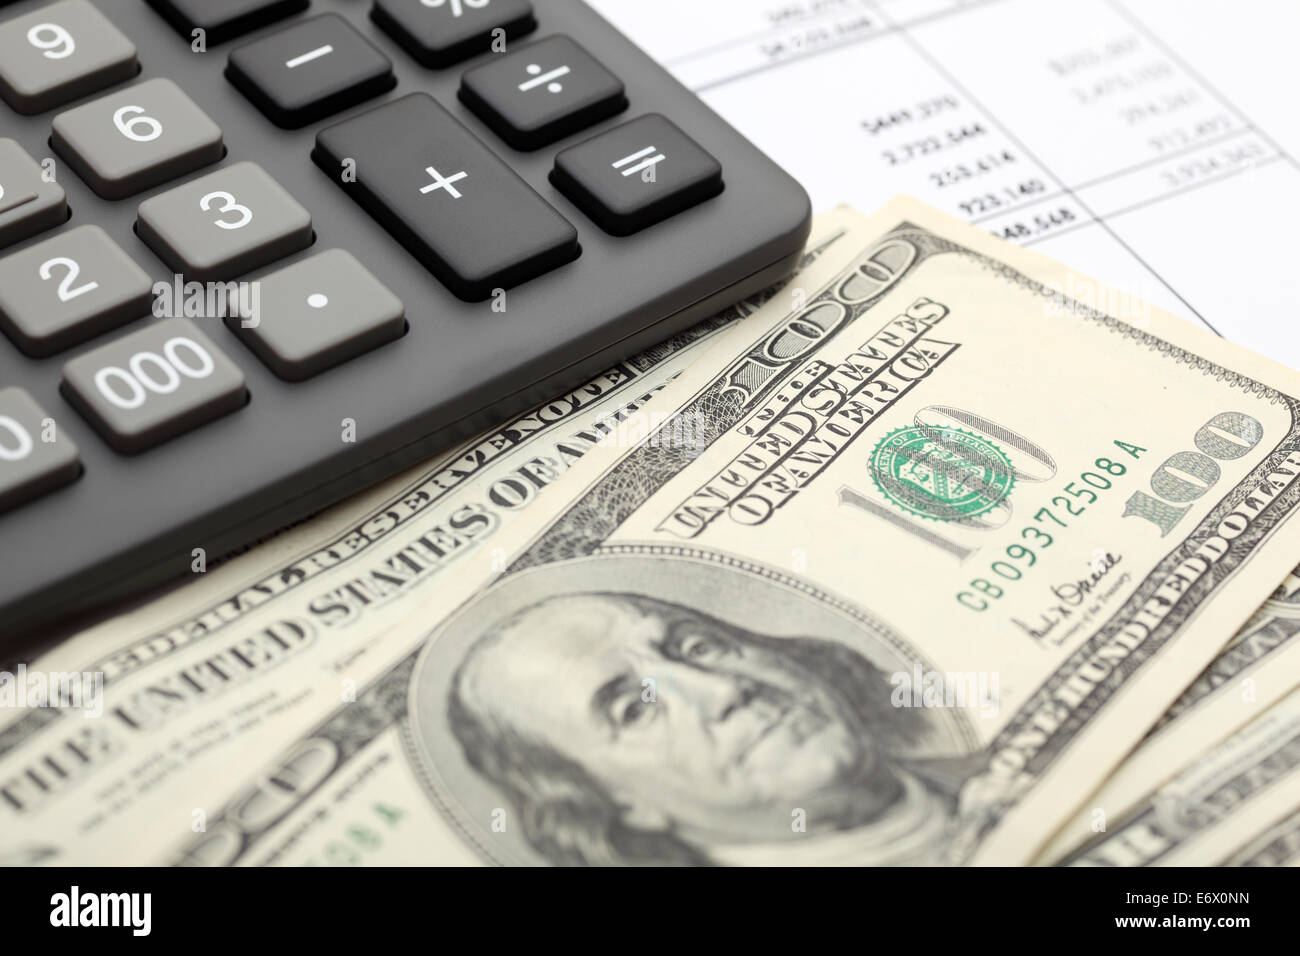 Financial statements. Calculator, dollars on financial statements. SDOF. Closeup. - Stock Image